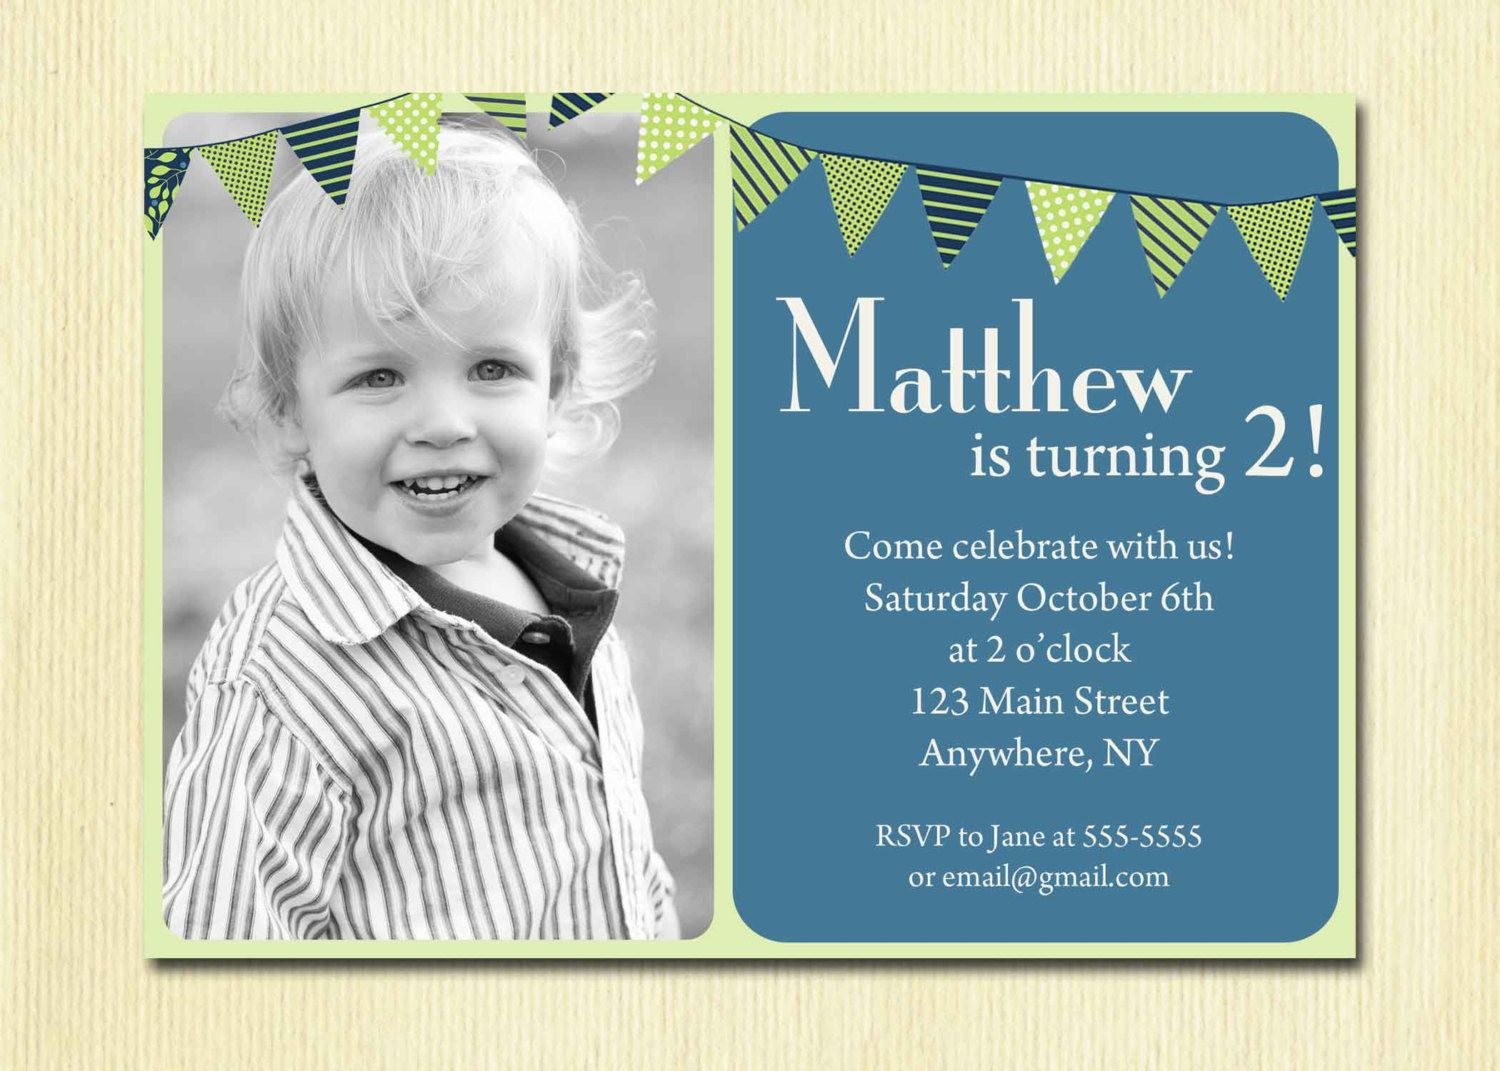 First birthday baby boy invitation 1st 2nd 3rd 4th birthday first birthday baby boy invitation 1st 2nd 3rd 4th birthday party diy photo printable filmwisefo Image collections